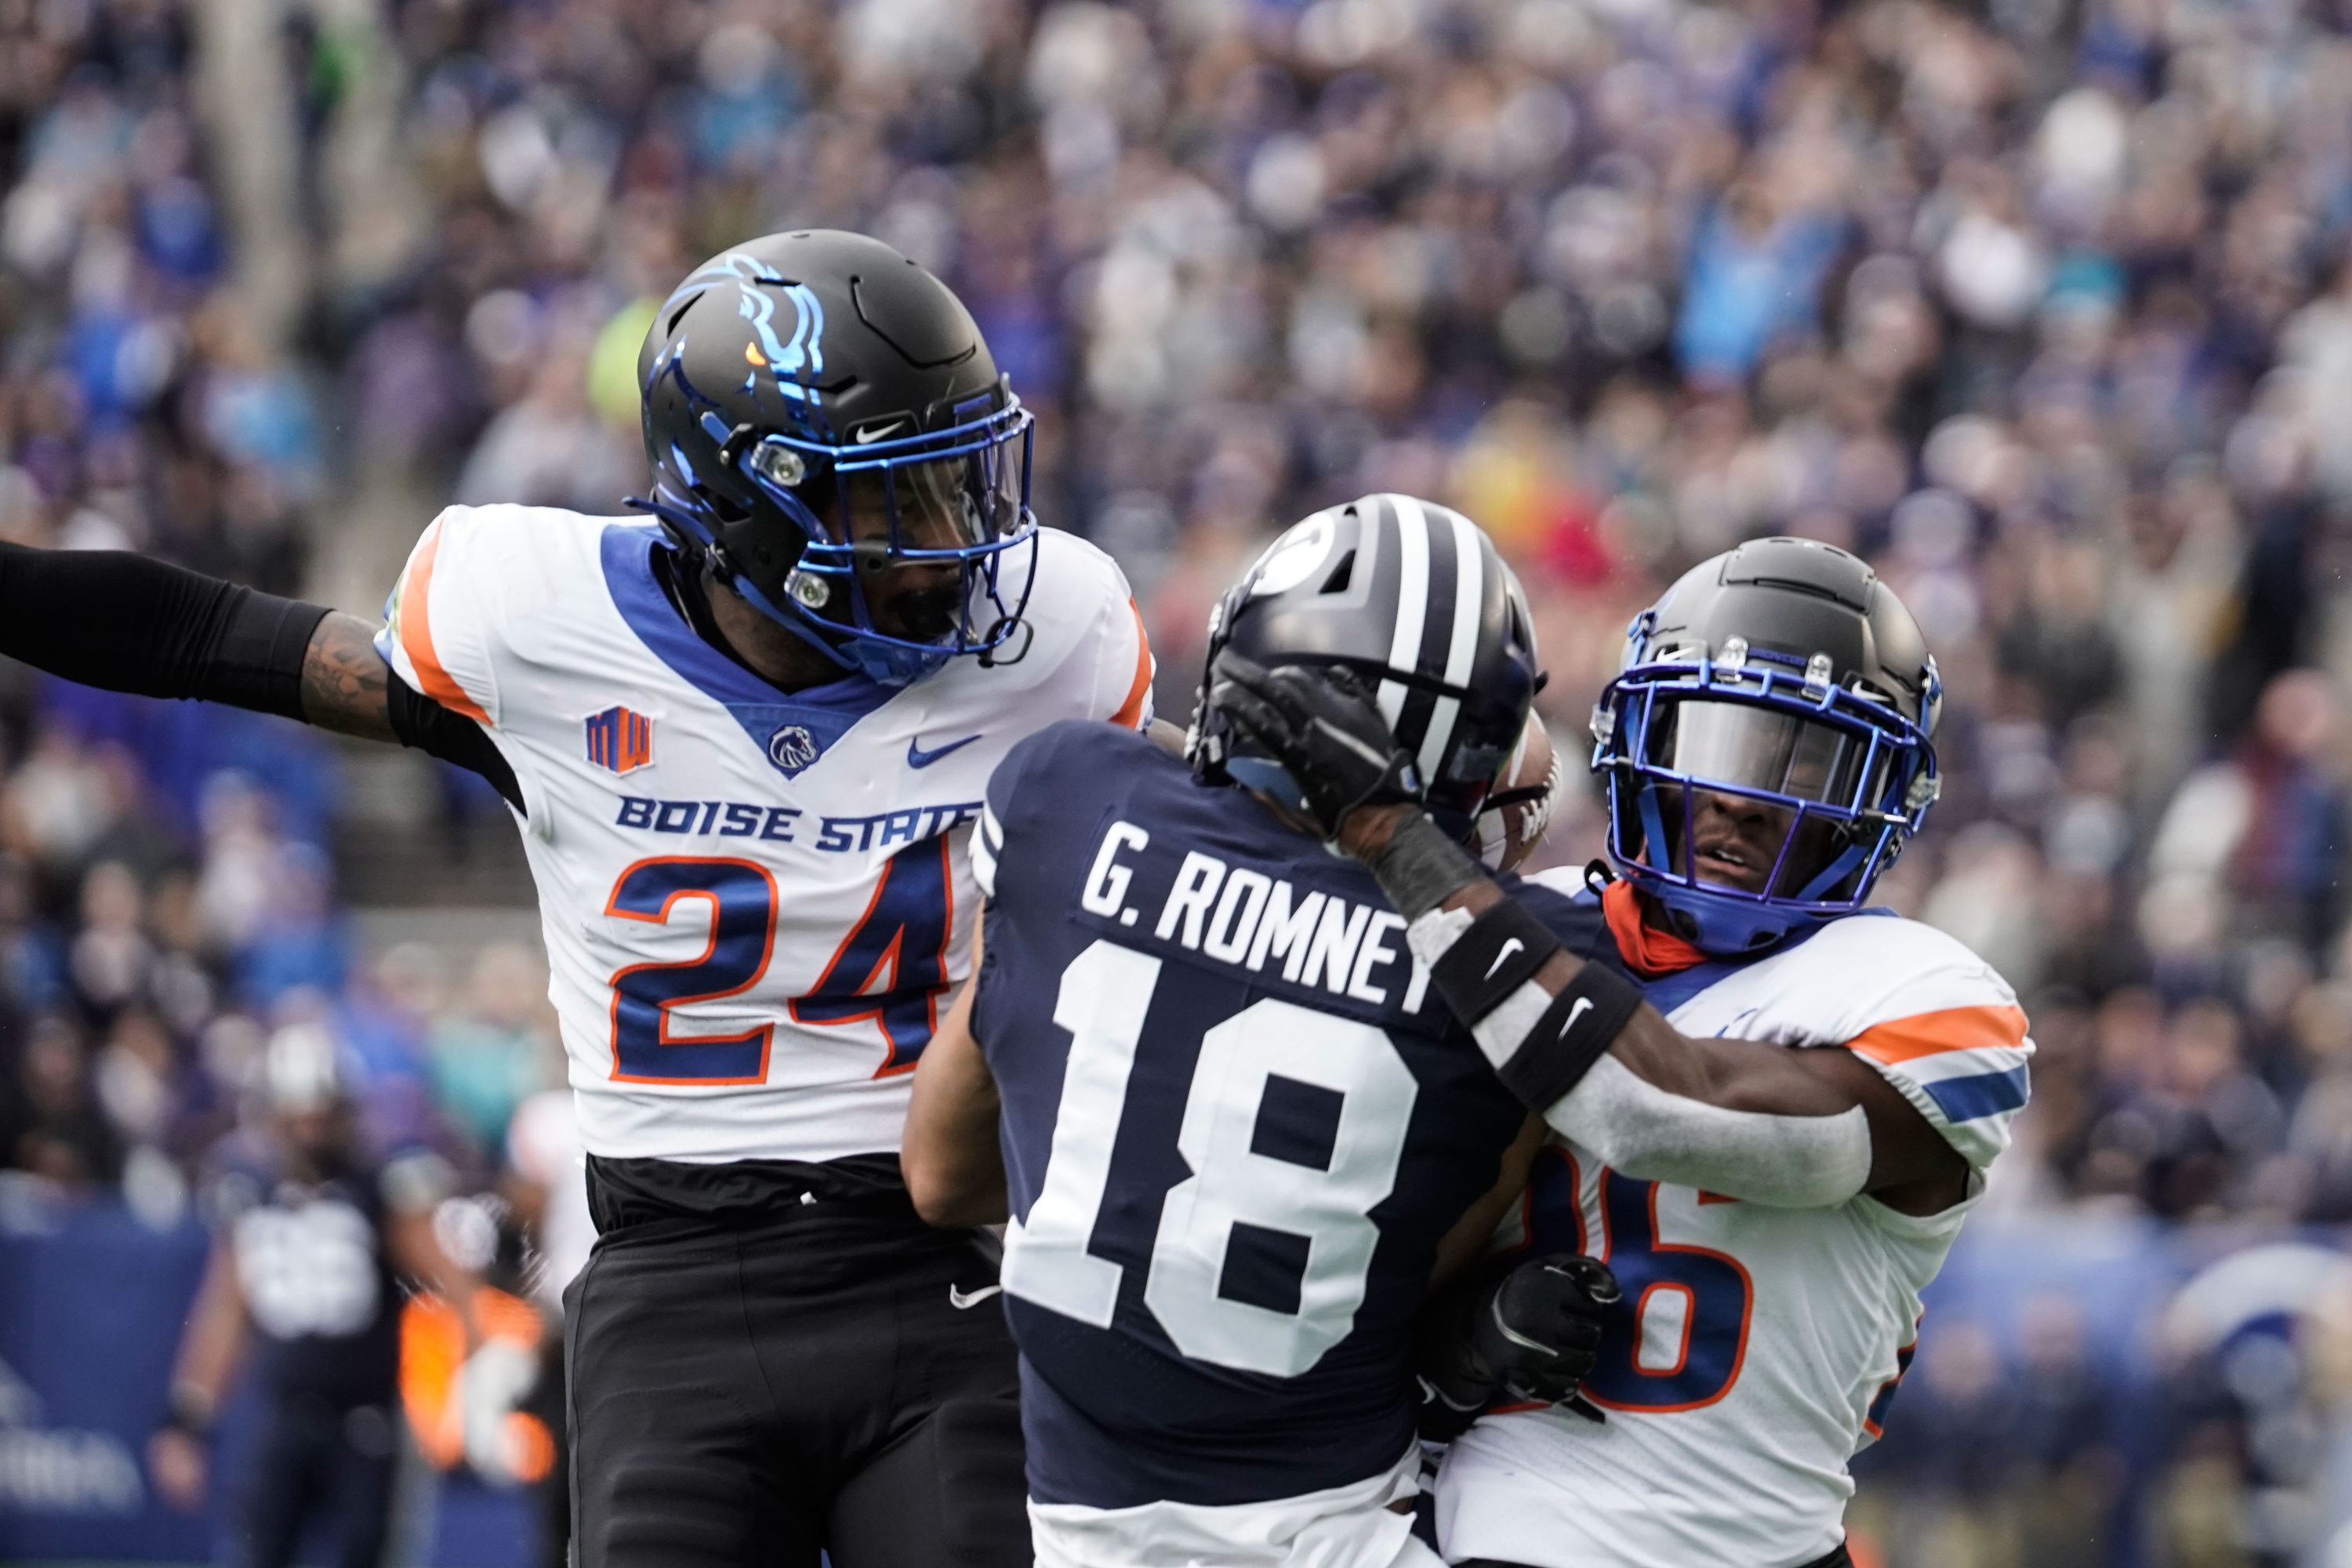 BYU wide receiver Gunner Romney is defended by Boise State's Damon Cole (24) and Jared Reed during an NCAA college football game at LaVell Edwards Stadium in Provo on Saturday, Oct. 9, 2021.